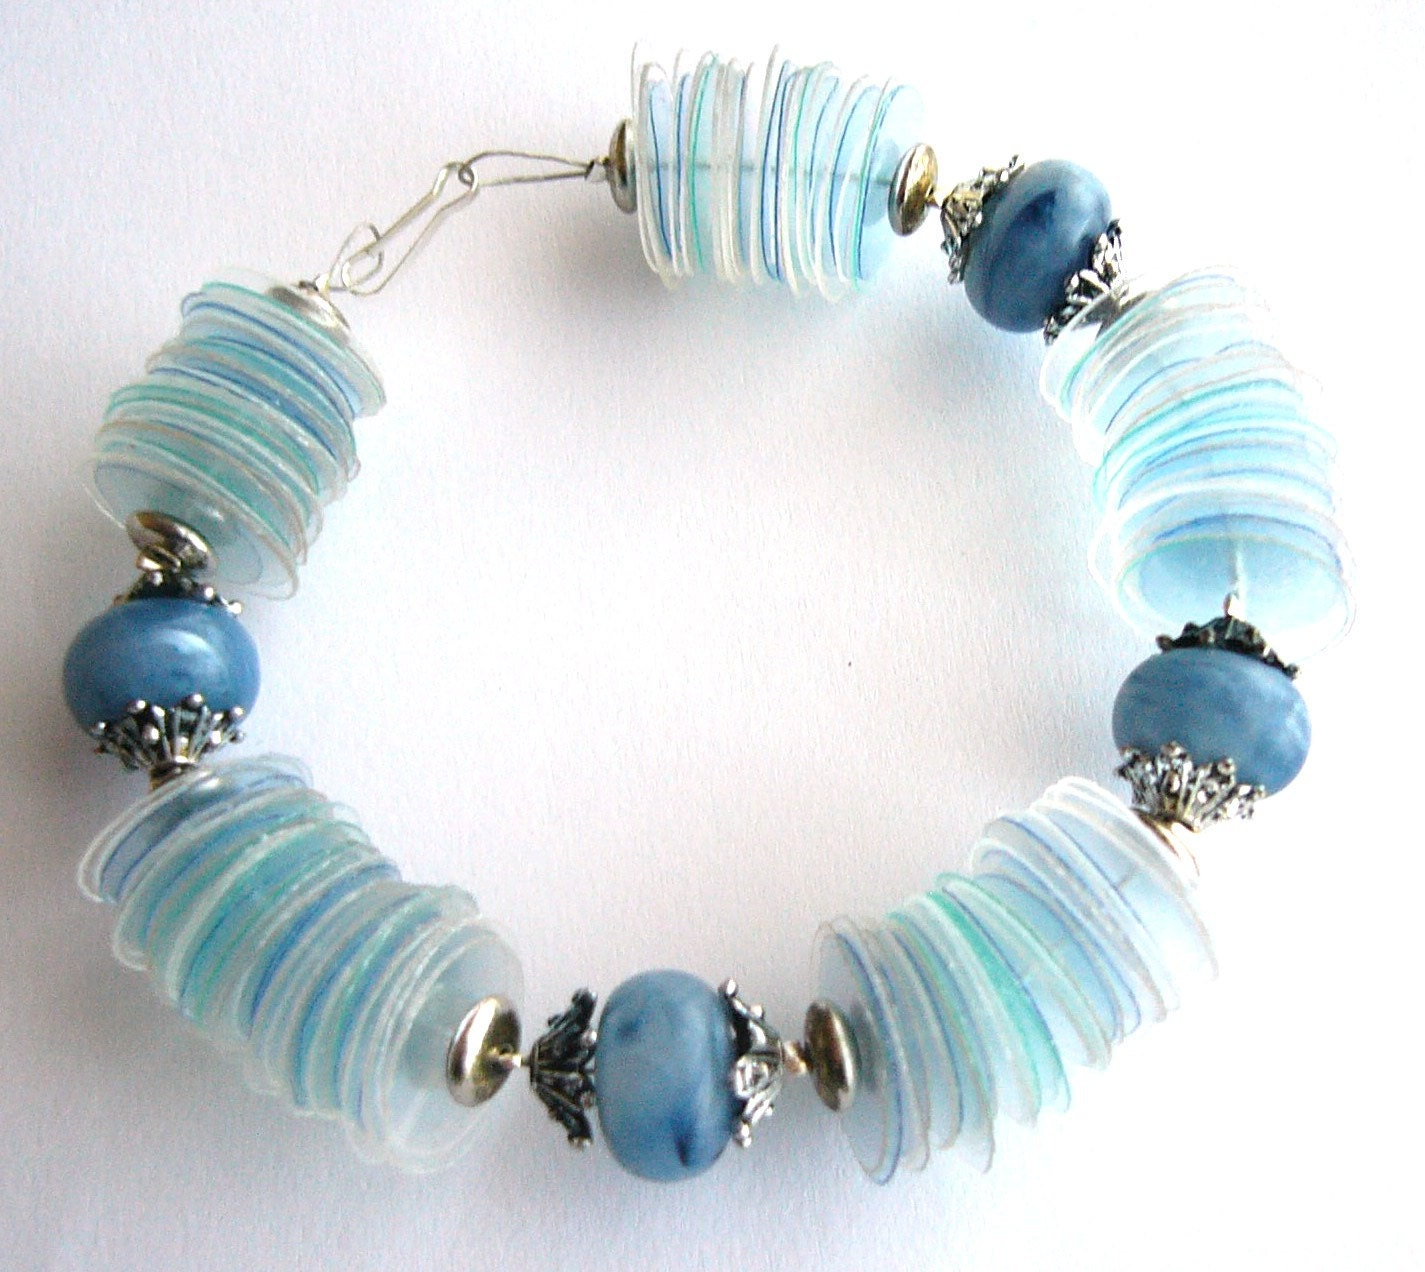 Upcycled jewelry blue bracelet recycled plastic bottles with blue chunky beads - recycled jewelry, eco friendly, sustainable fashion - dekoprojects